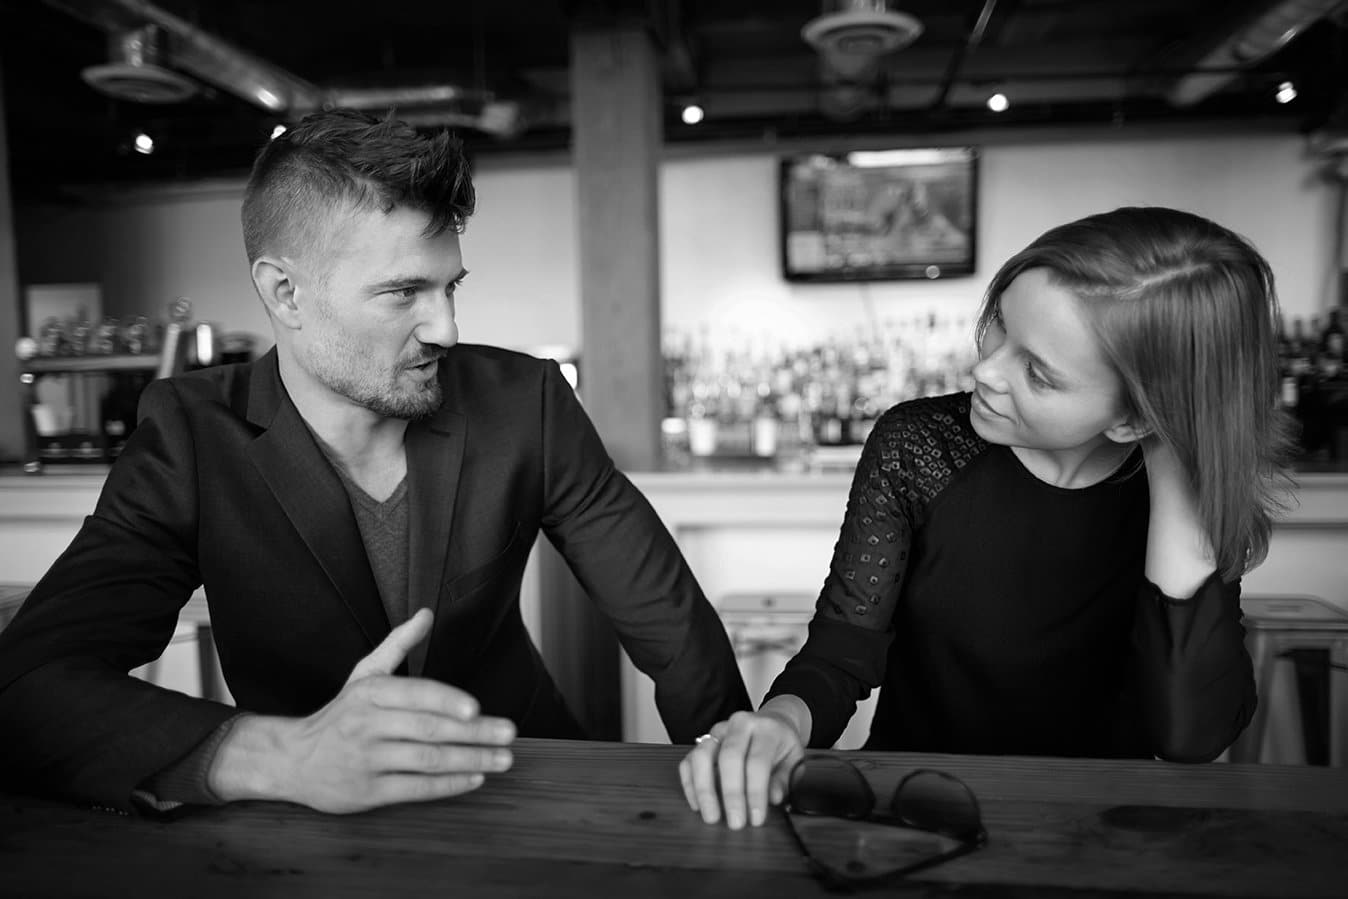 Couple having conversation in a restaurant.